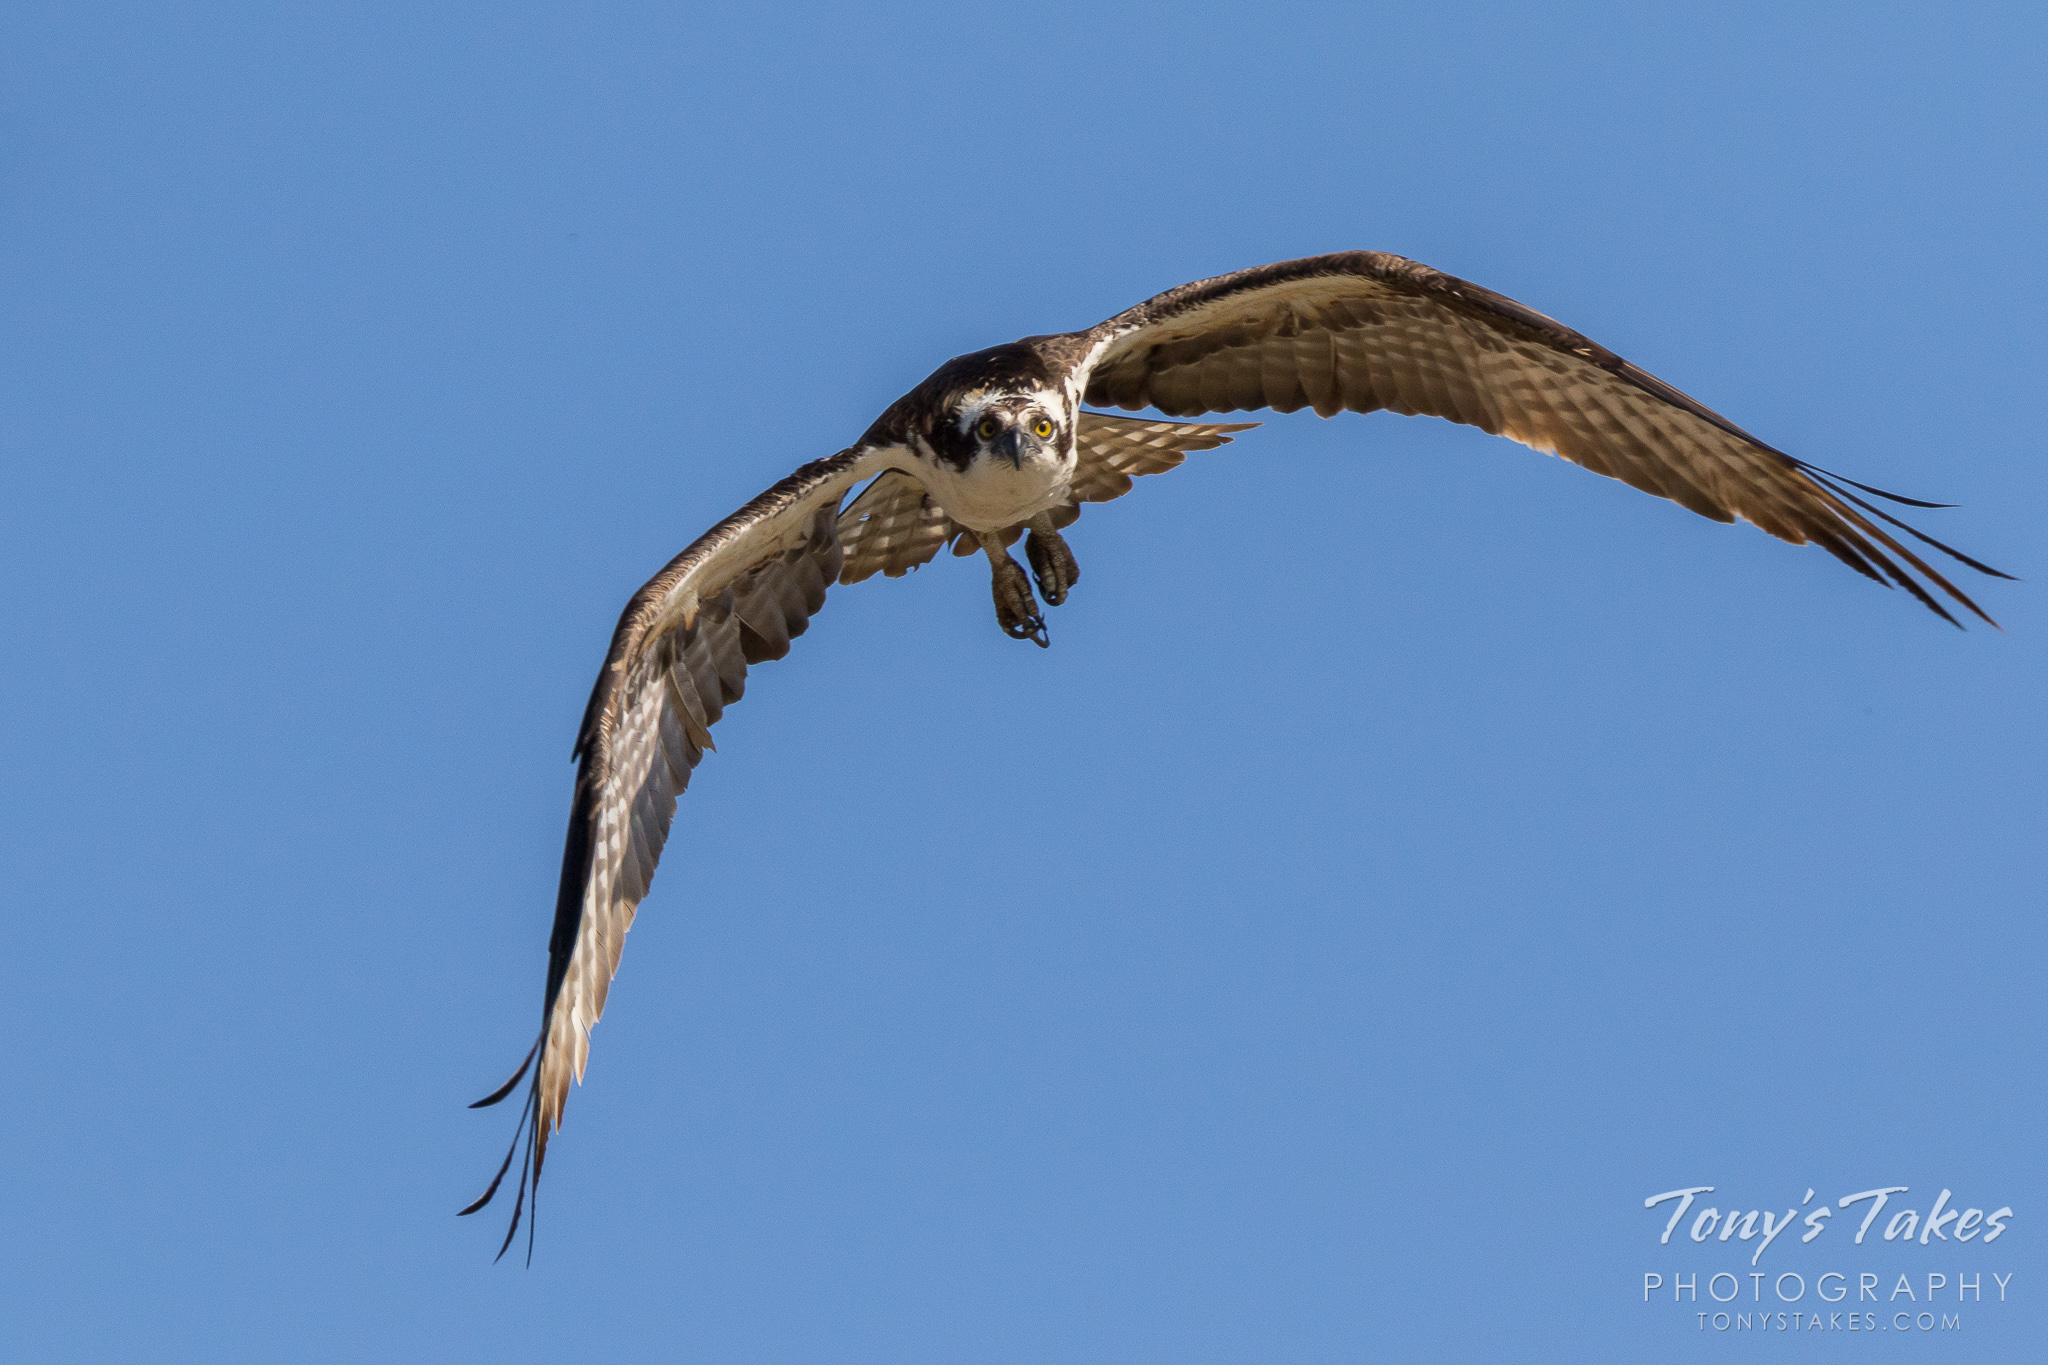 A male osprey flies head on with its eyes focused on the photographer. (© Tony's Takes)